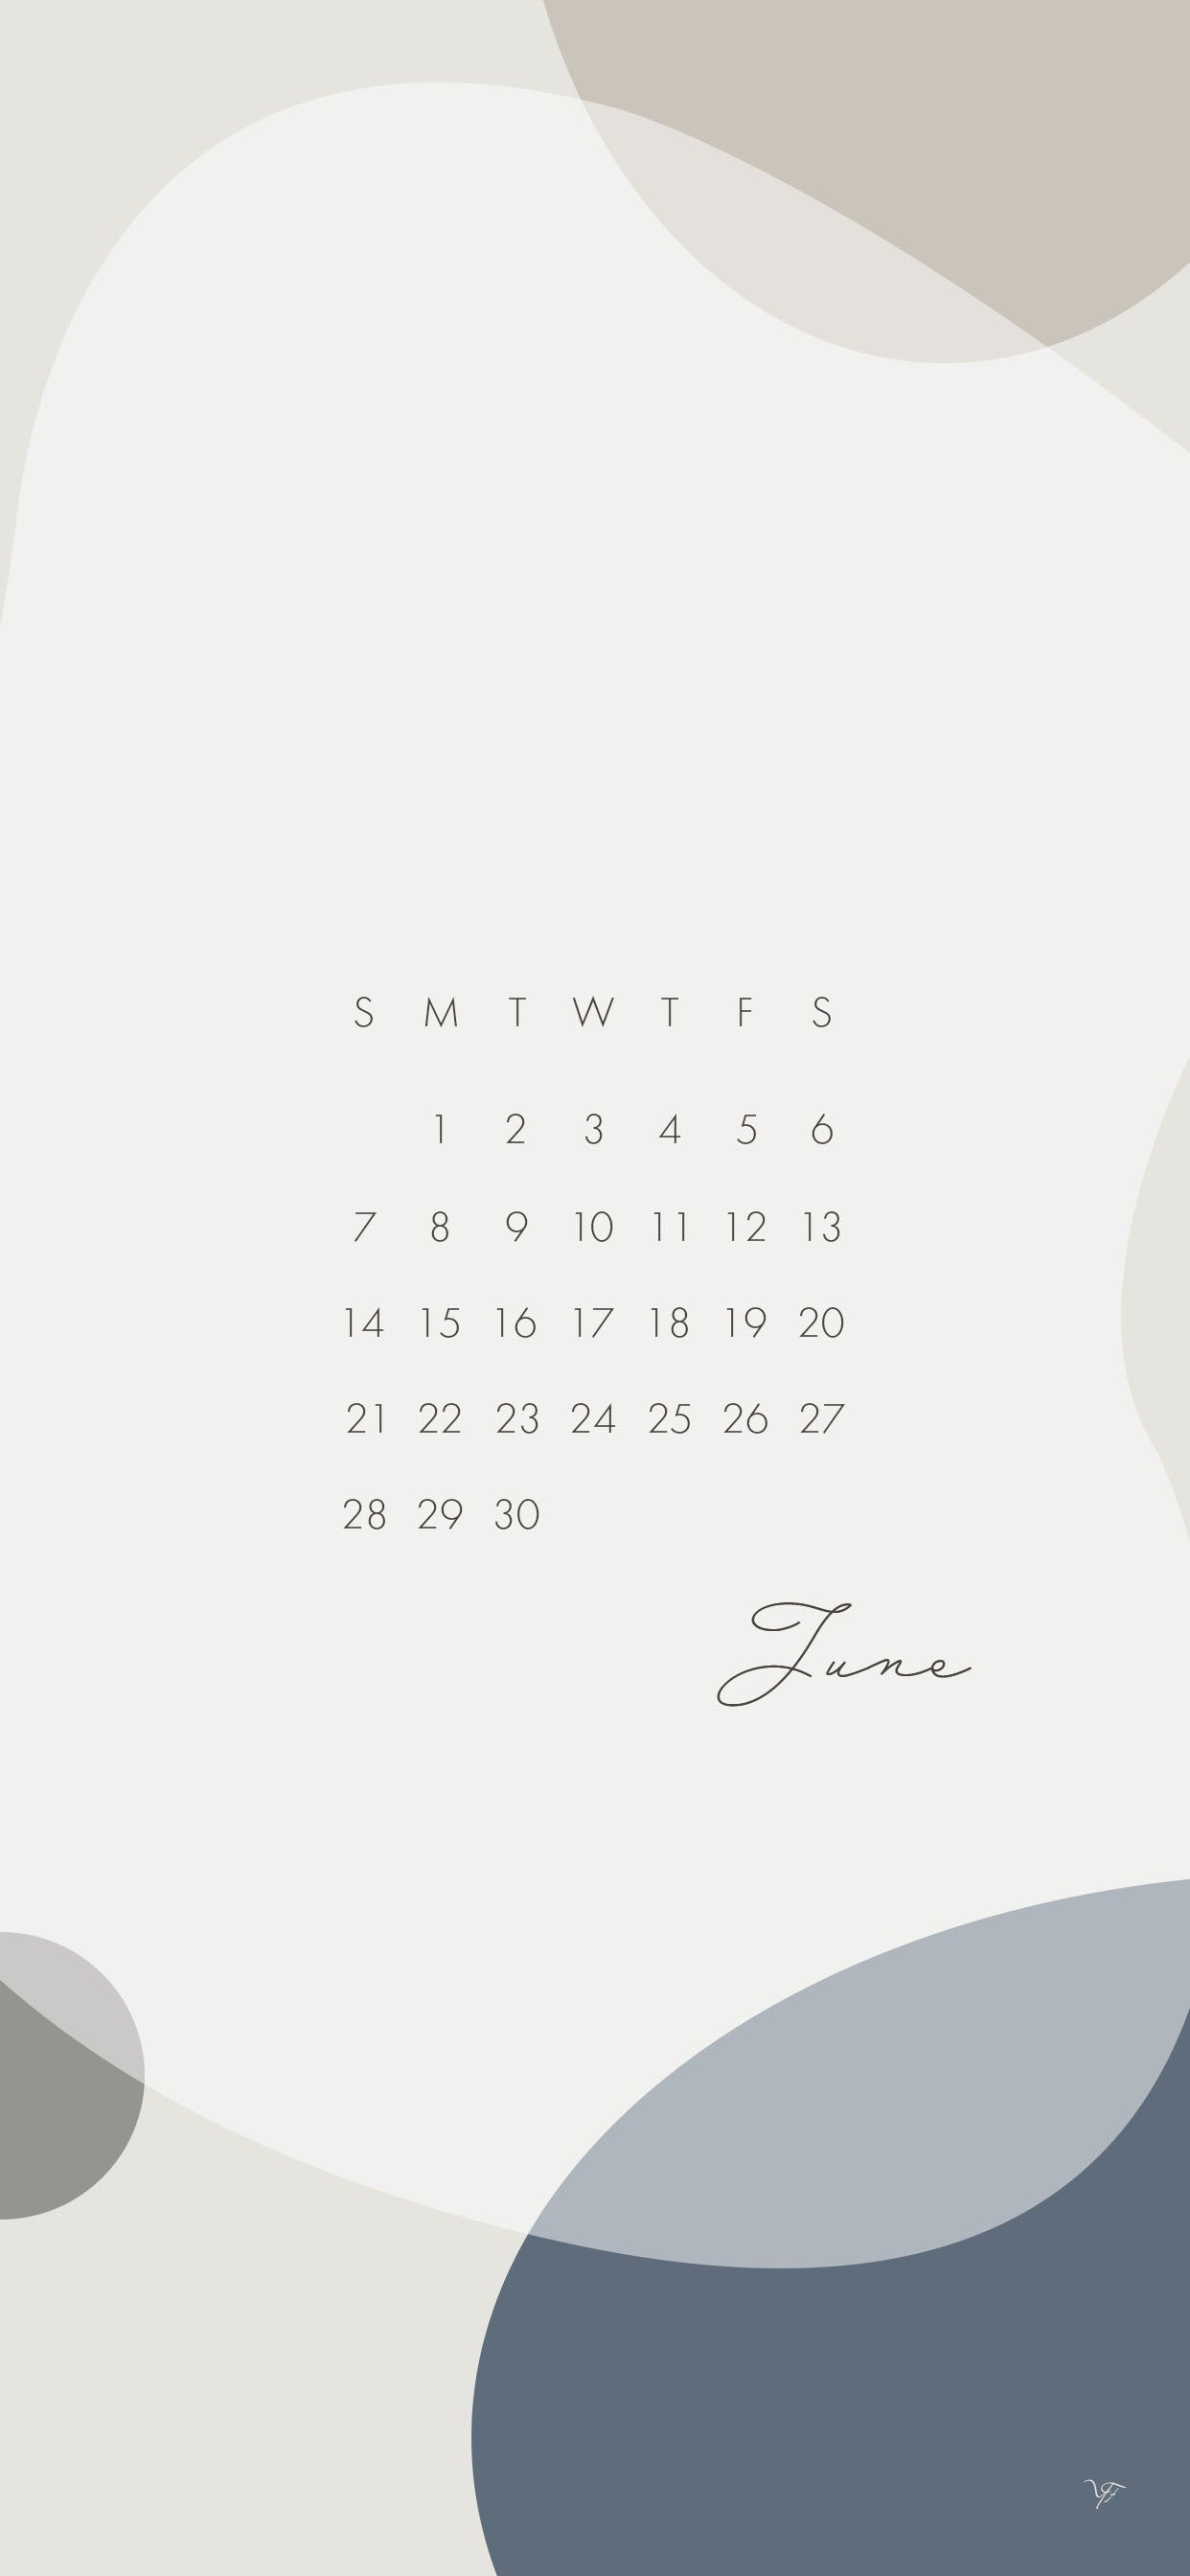 Free June Calendar Wallpaper For The Iphone 𝗬 𝗙 Note